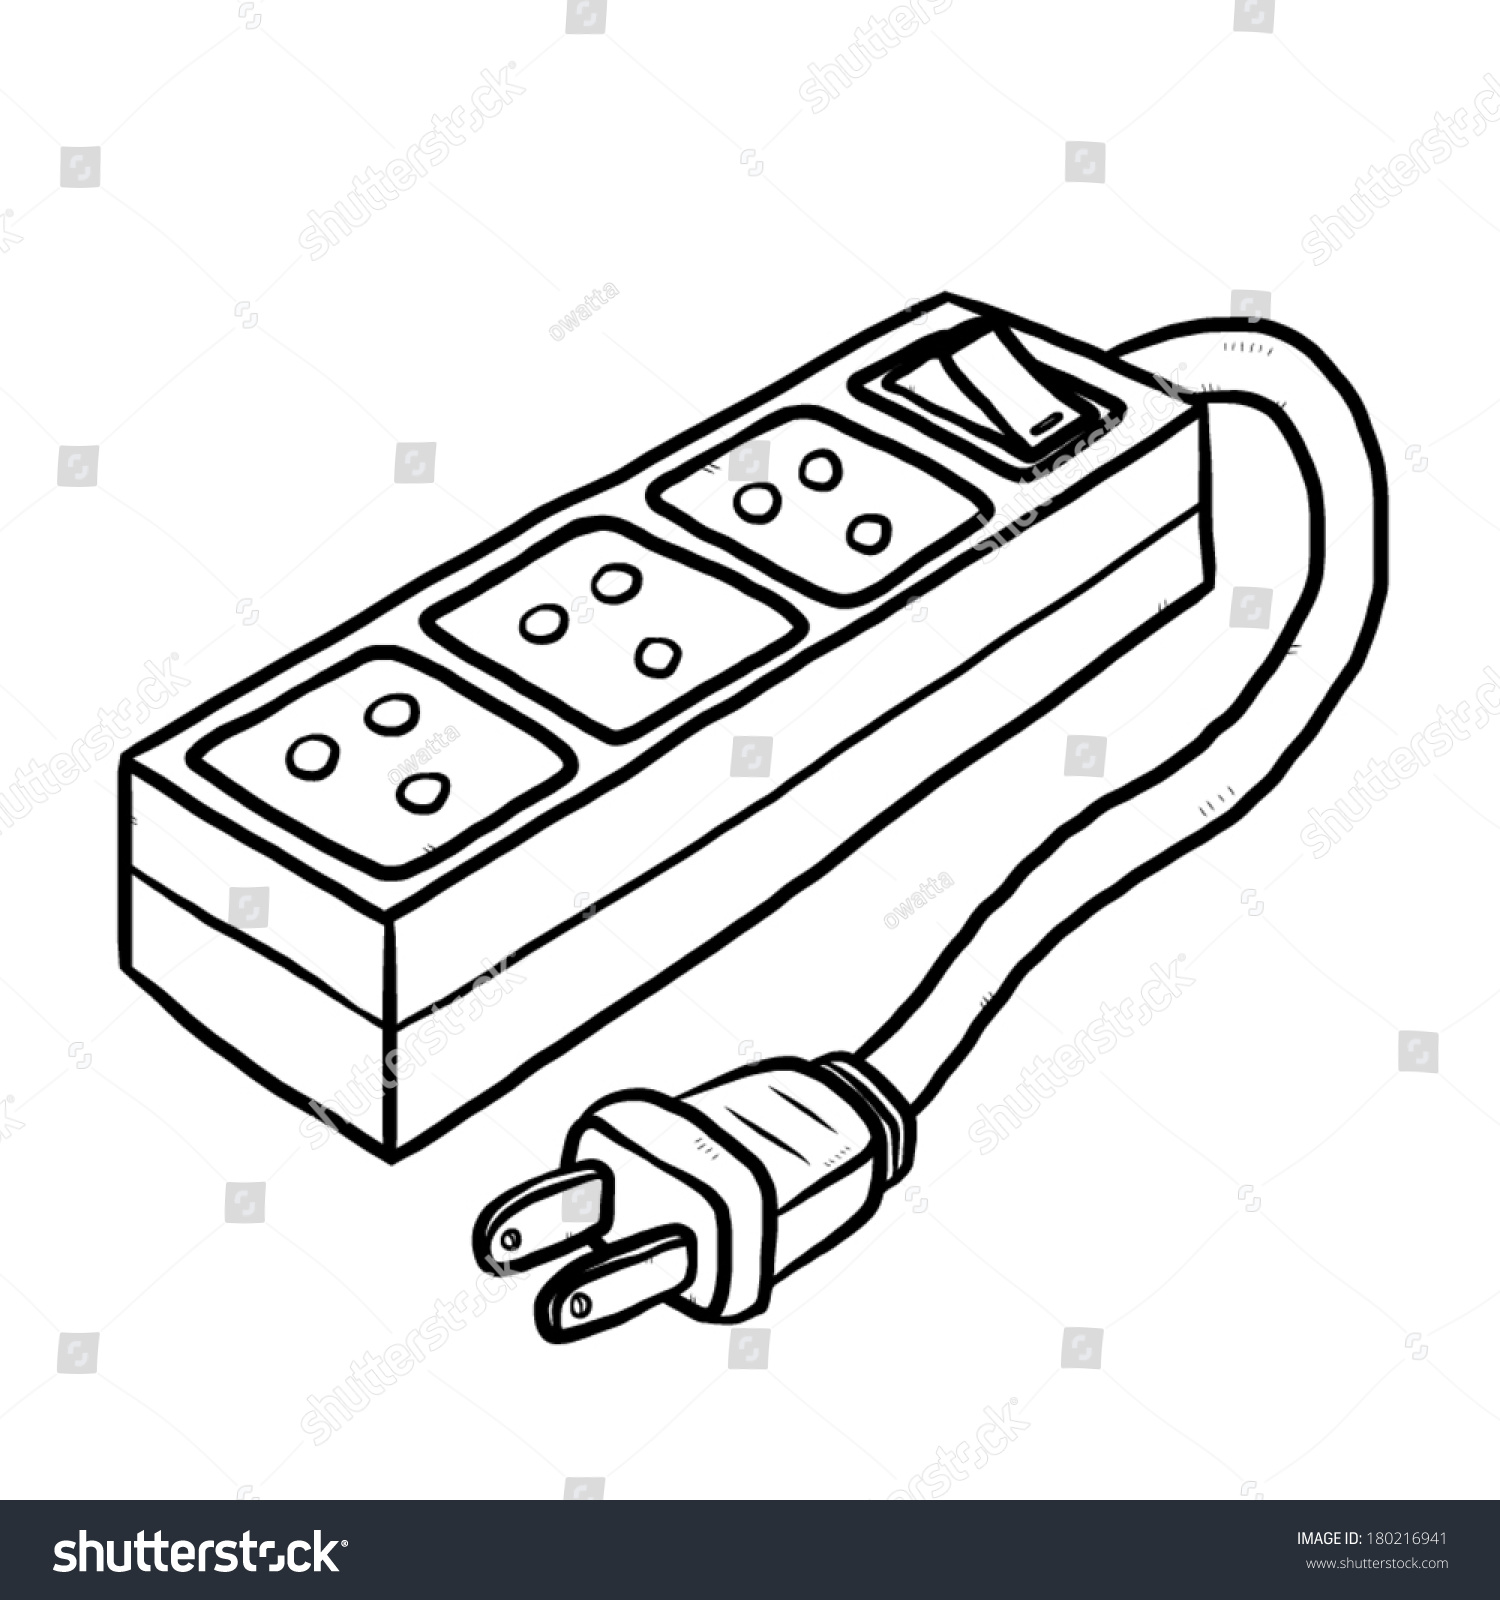 Free pictures SOCKET - 47 images found